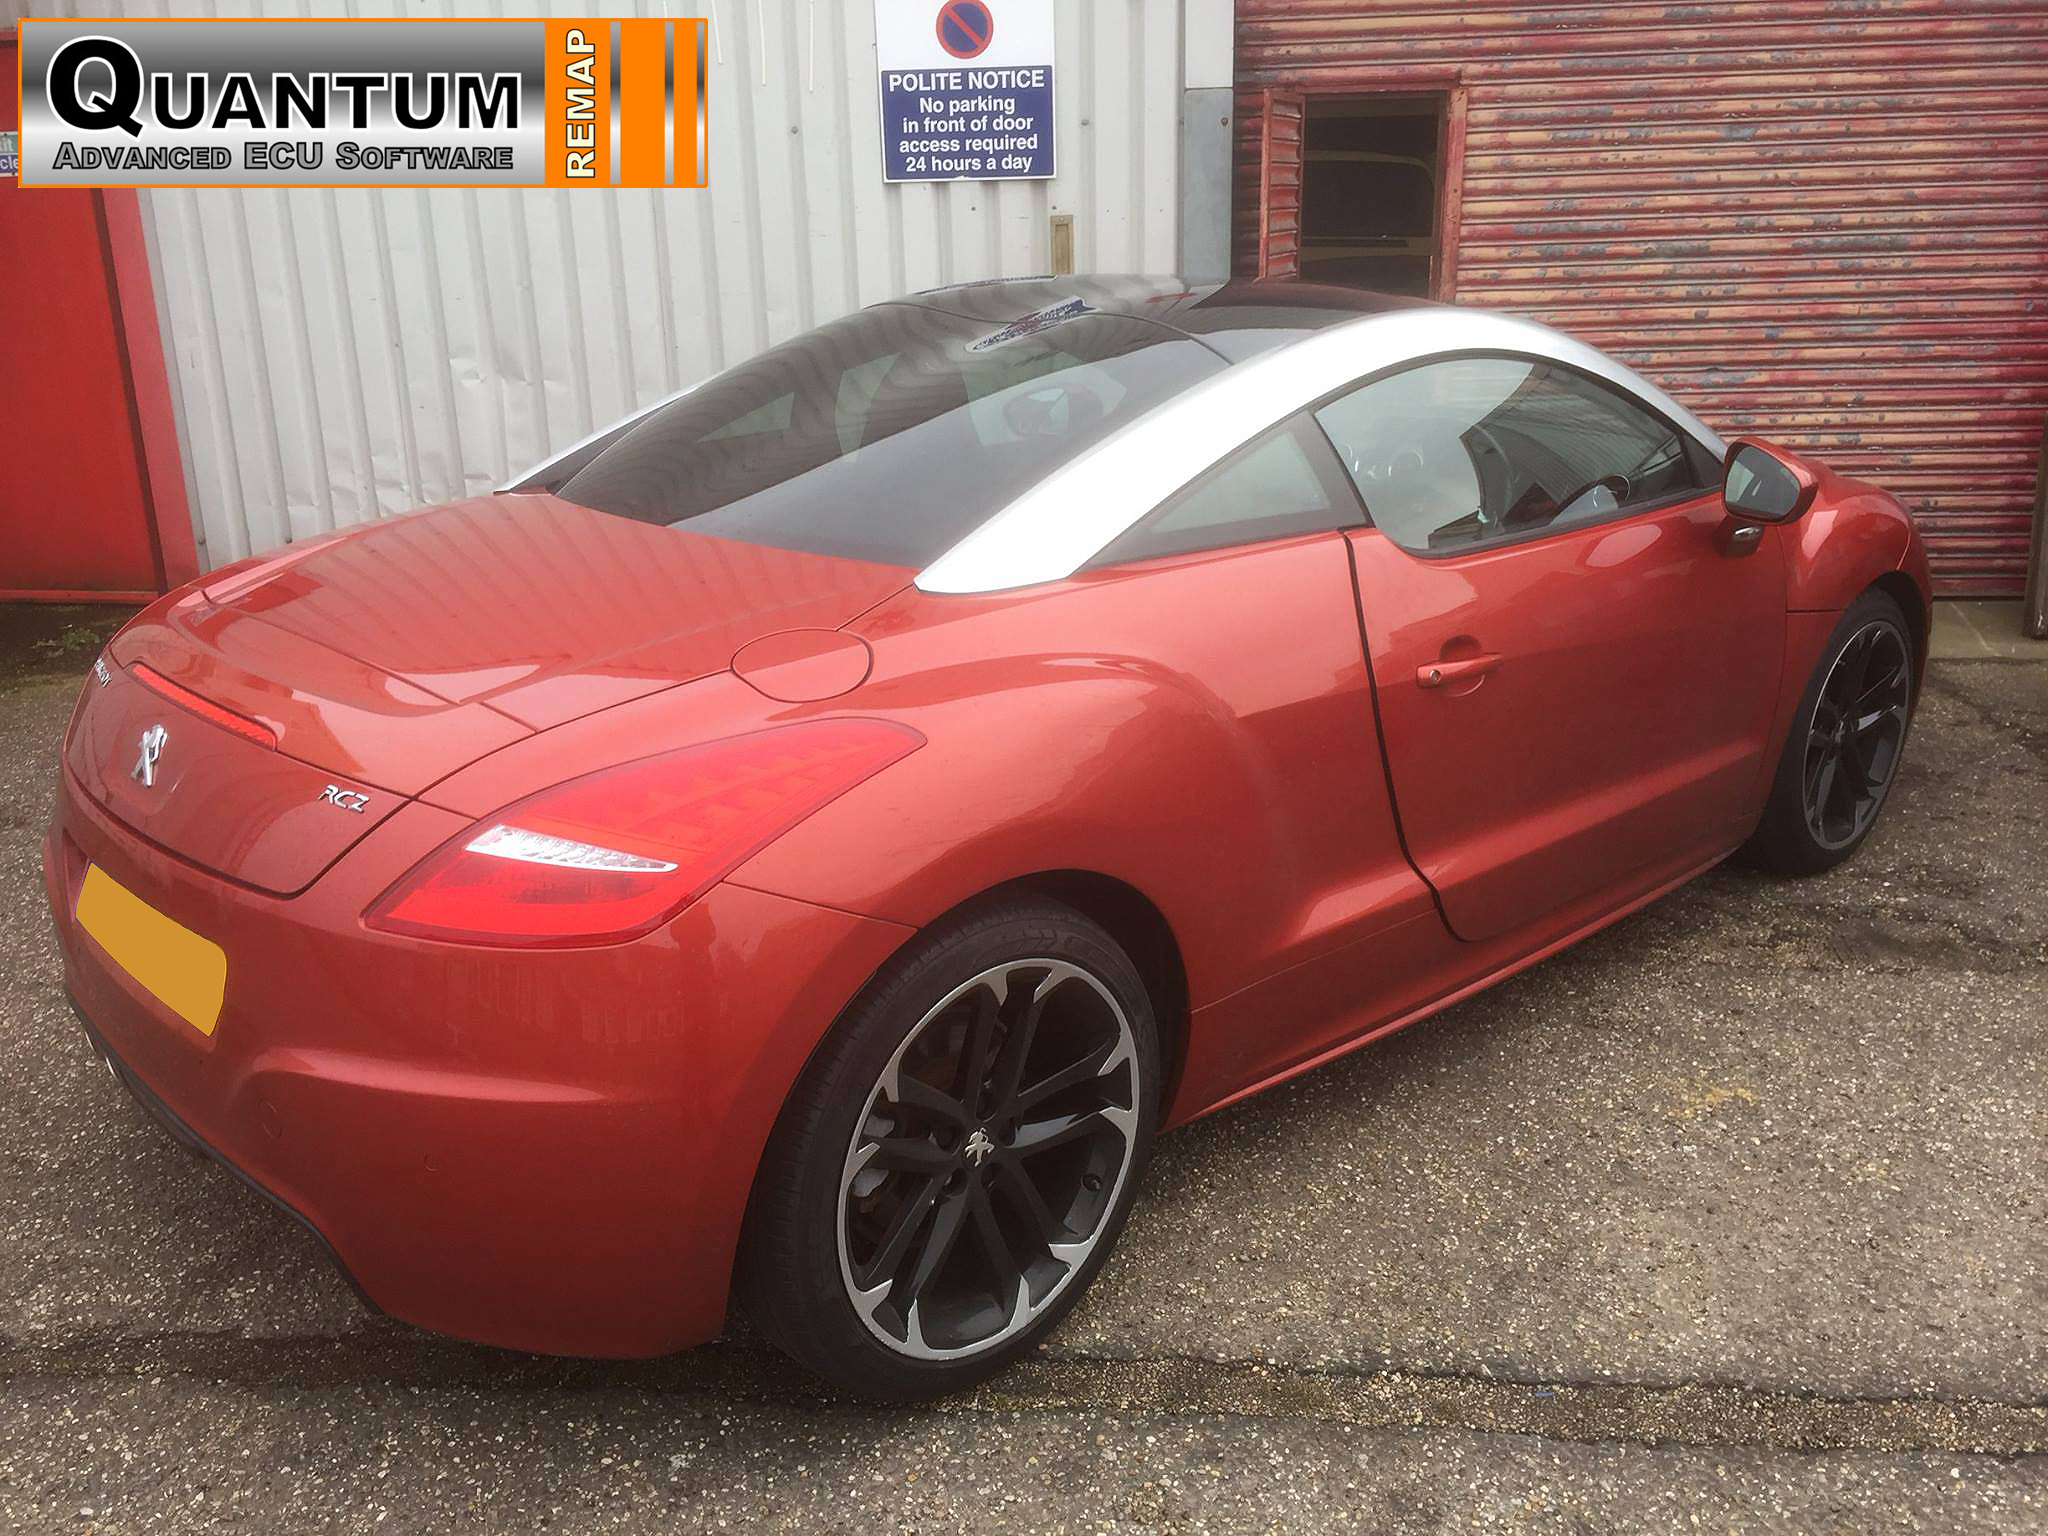 Quantum Tuning Dealers Vag Fanatics Carried Out A Stage 1 Remap With An Egr Delete On This Peugeot Rcz Achieving Gains Of 33bhp And 62nm Of Torque And An Extra 4mpg